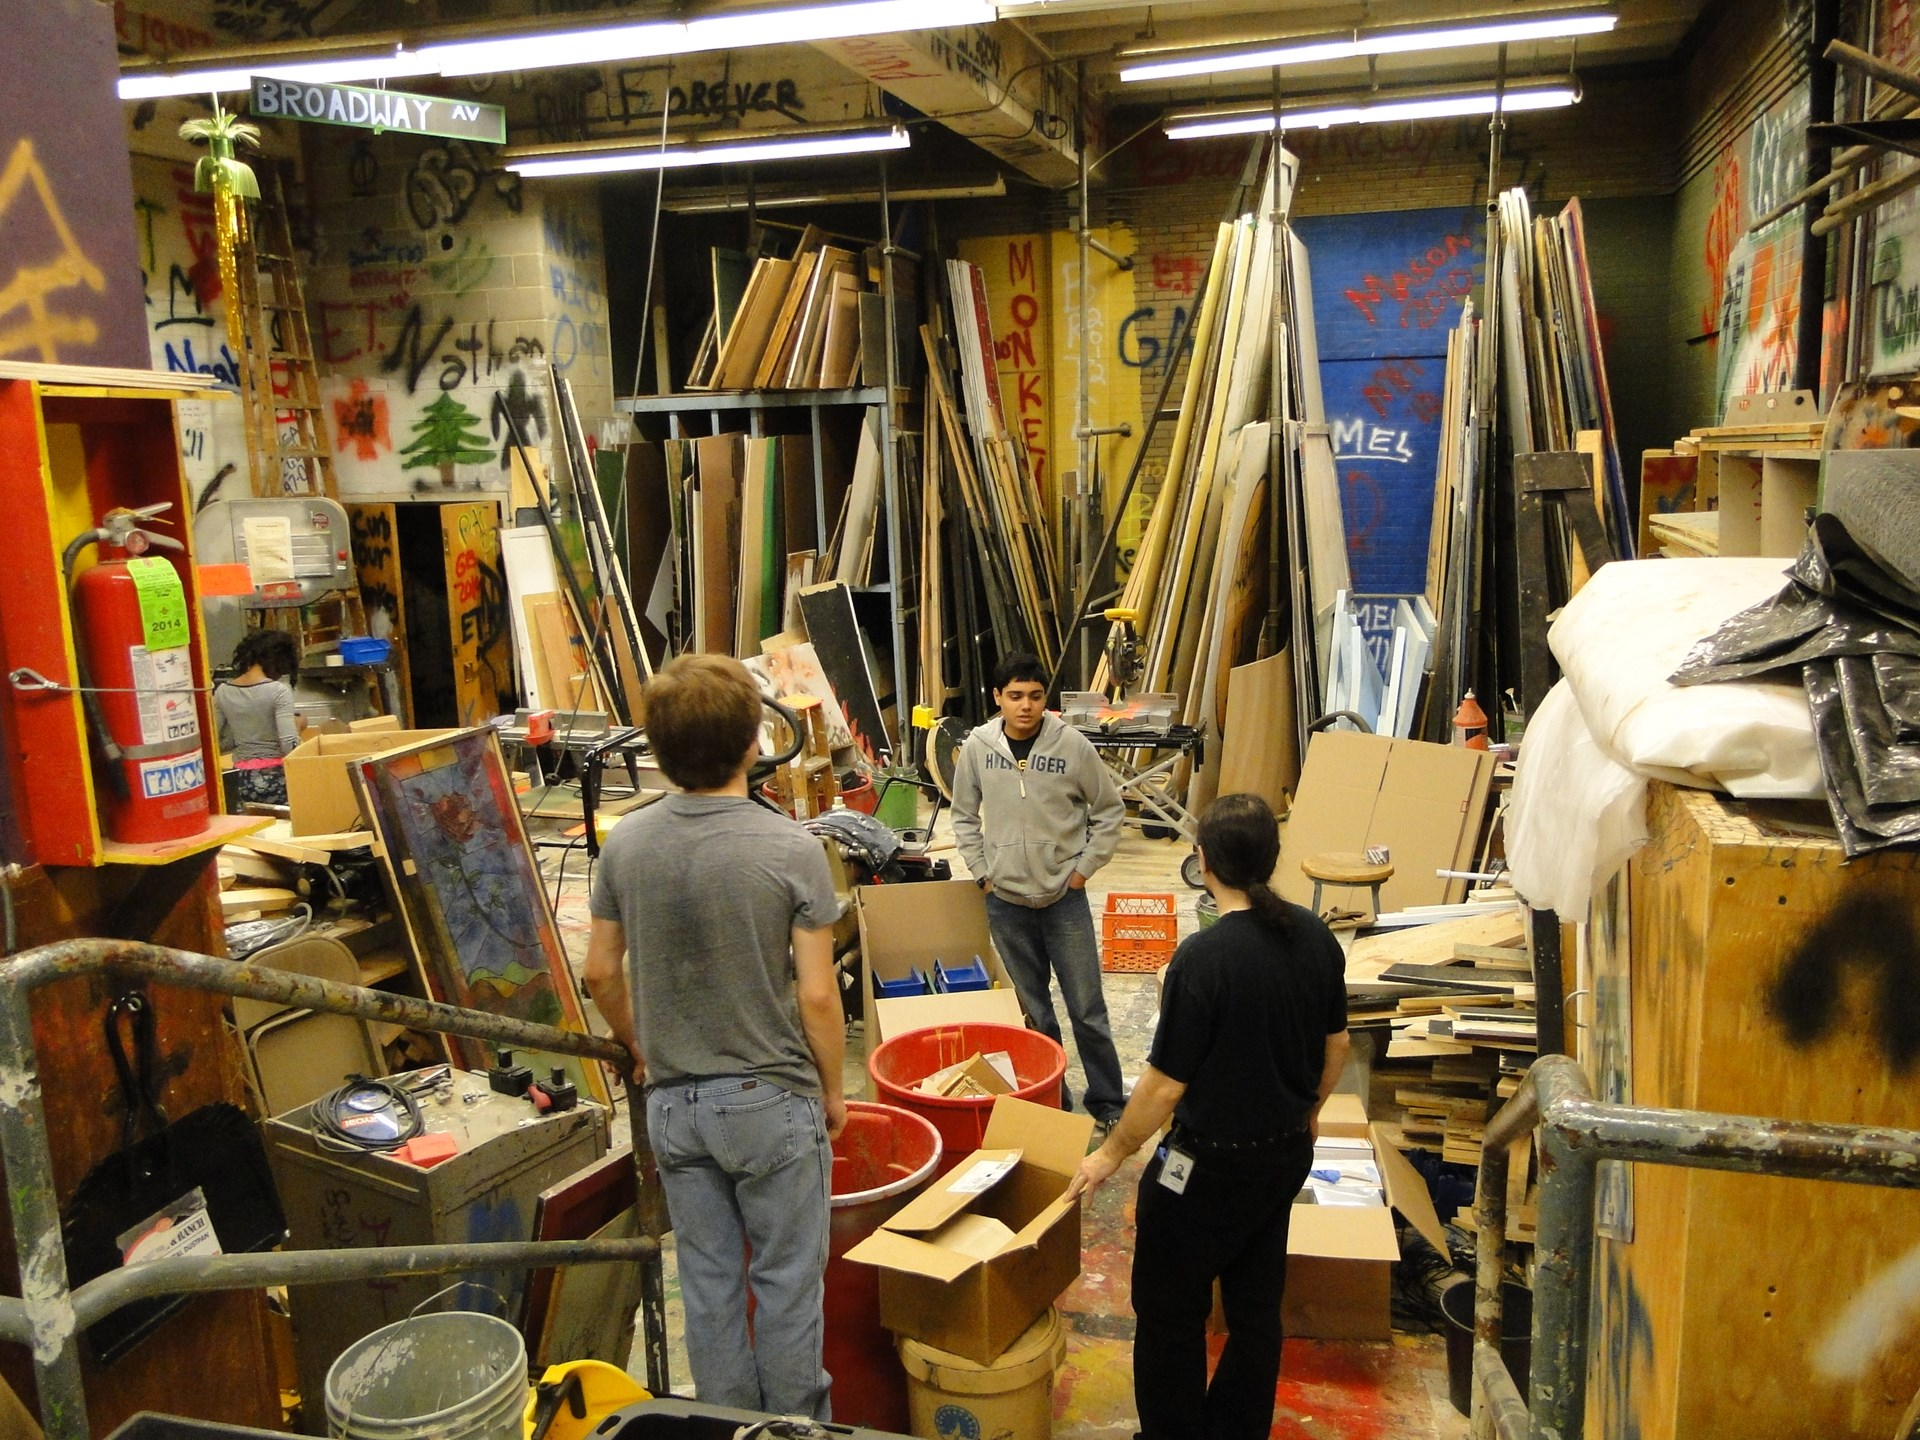 In the back stage storage room - props, sets etc.